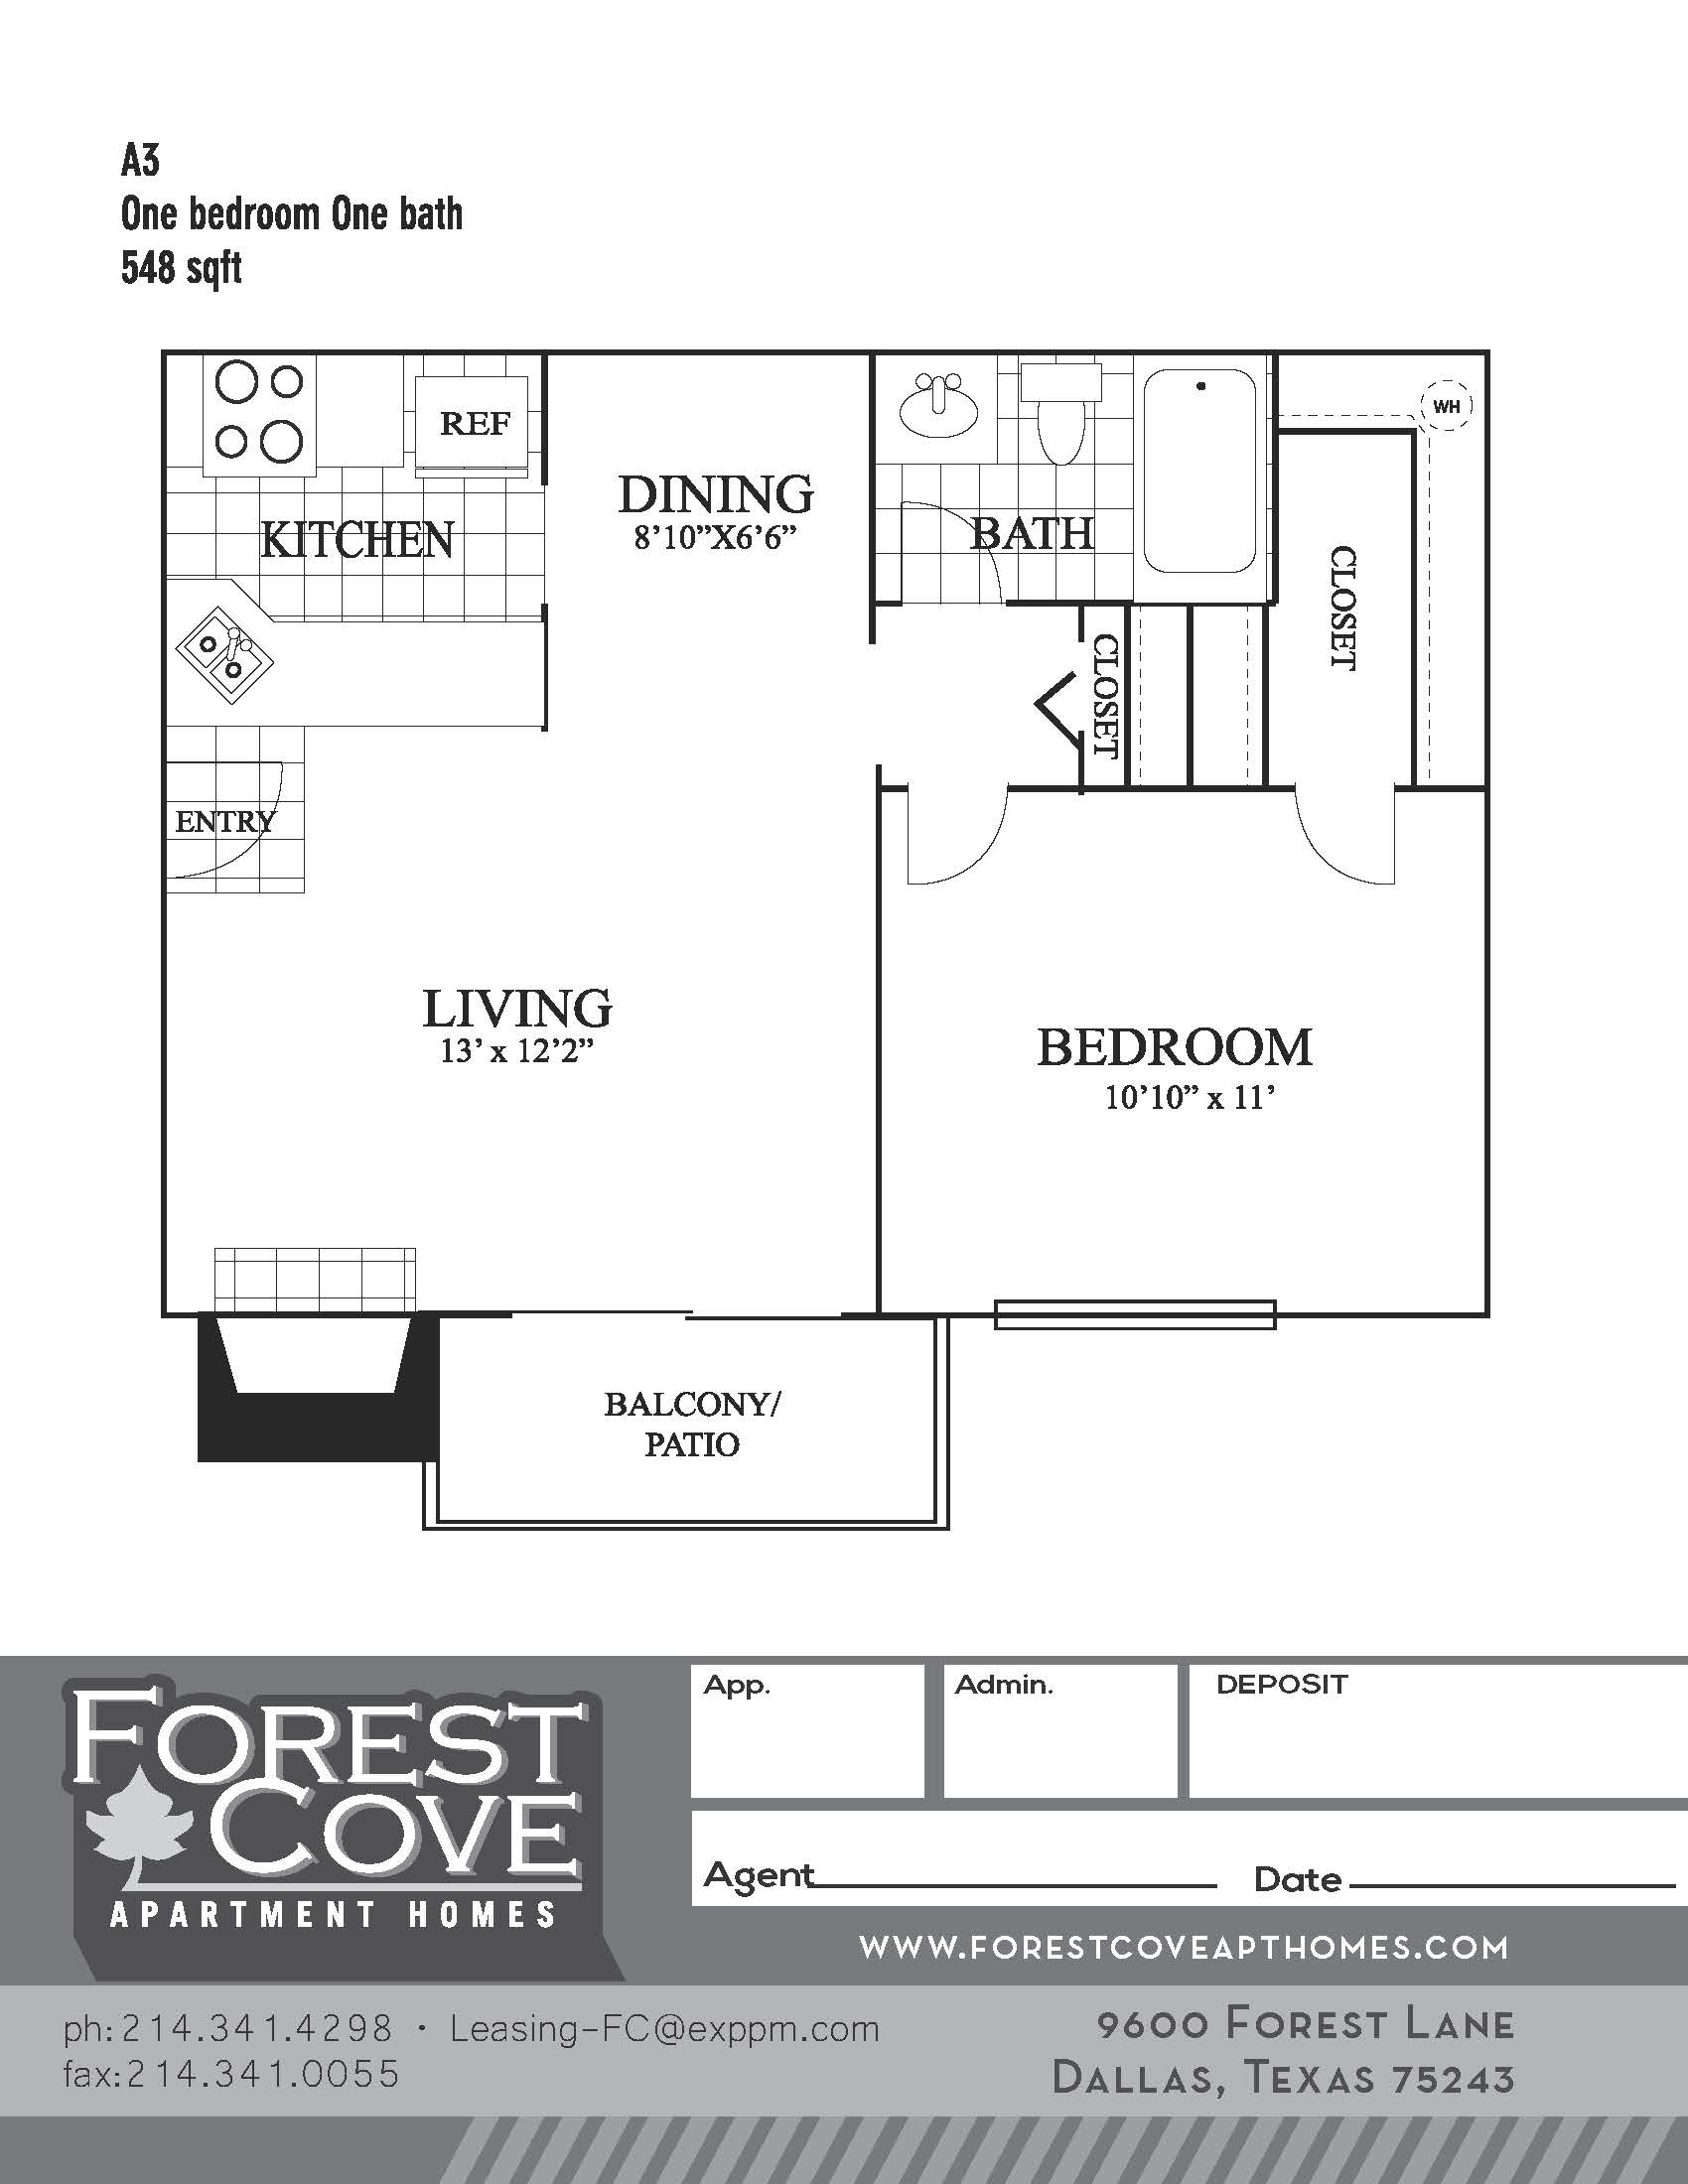 Forest Cove Apartments - Floorplan - A3